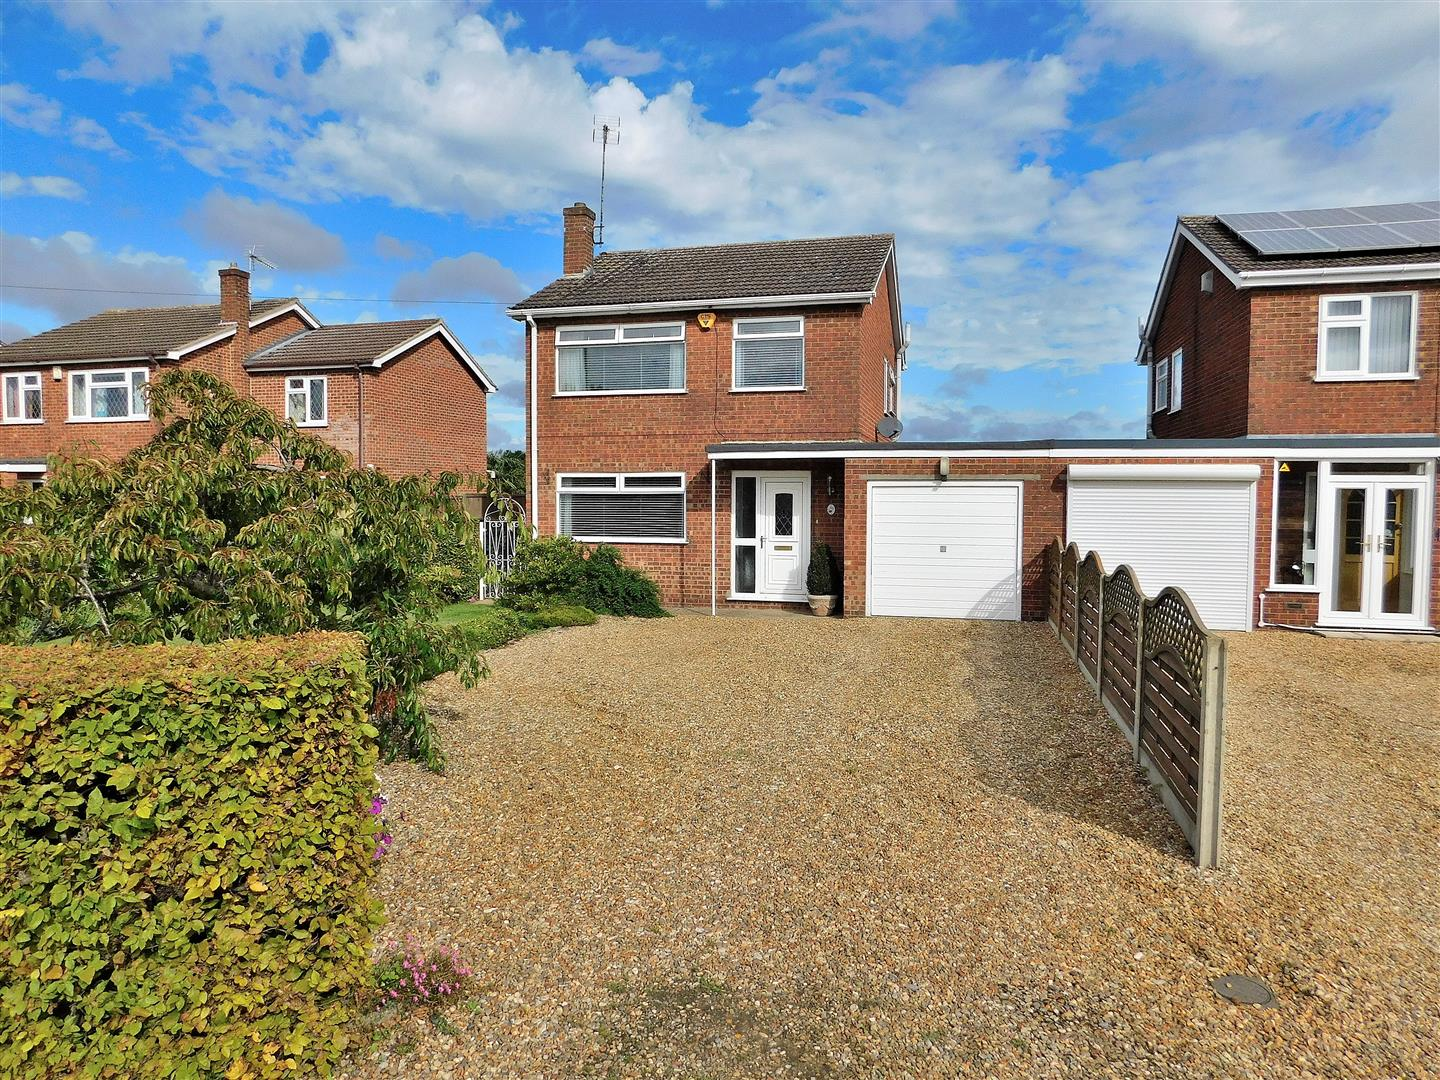 3 bed link detached house for sale in Northgate Way, King's Lynn 0